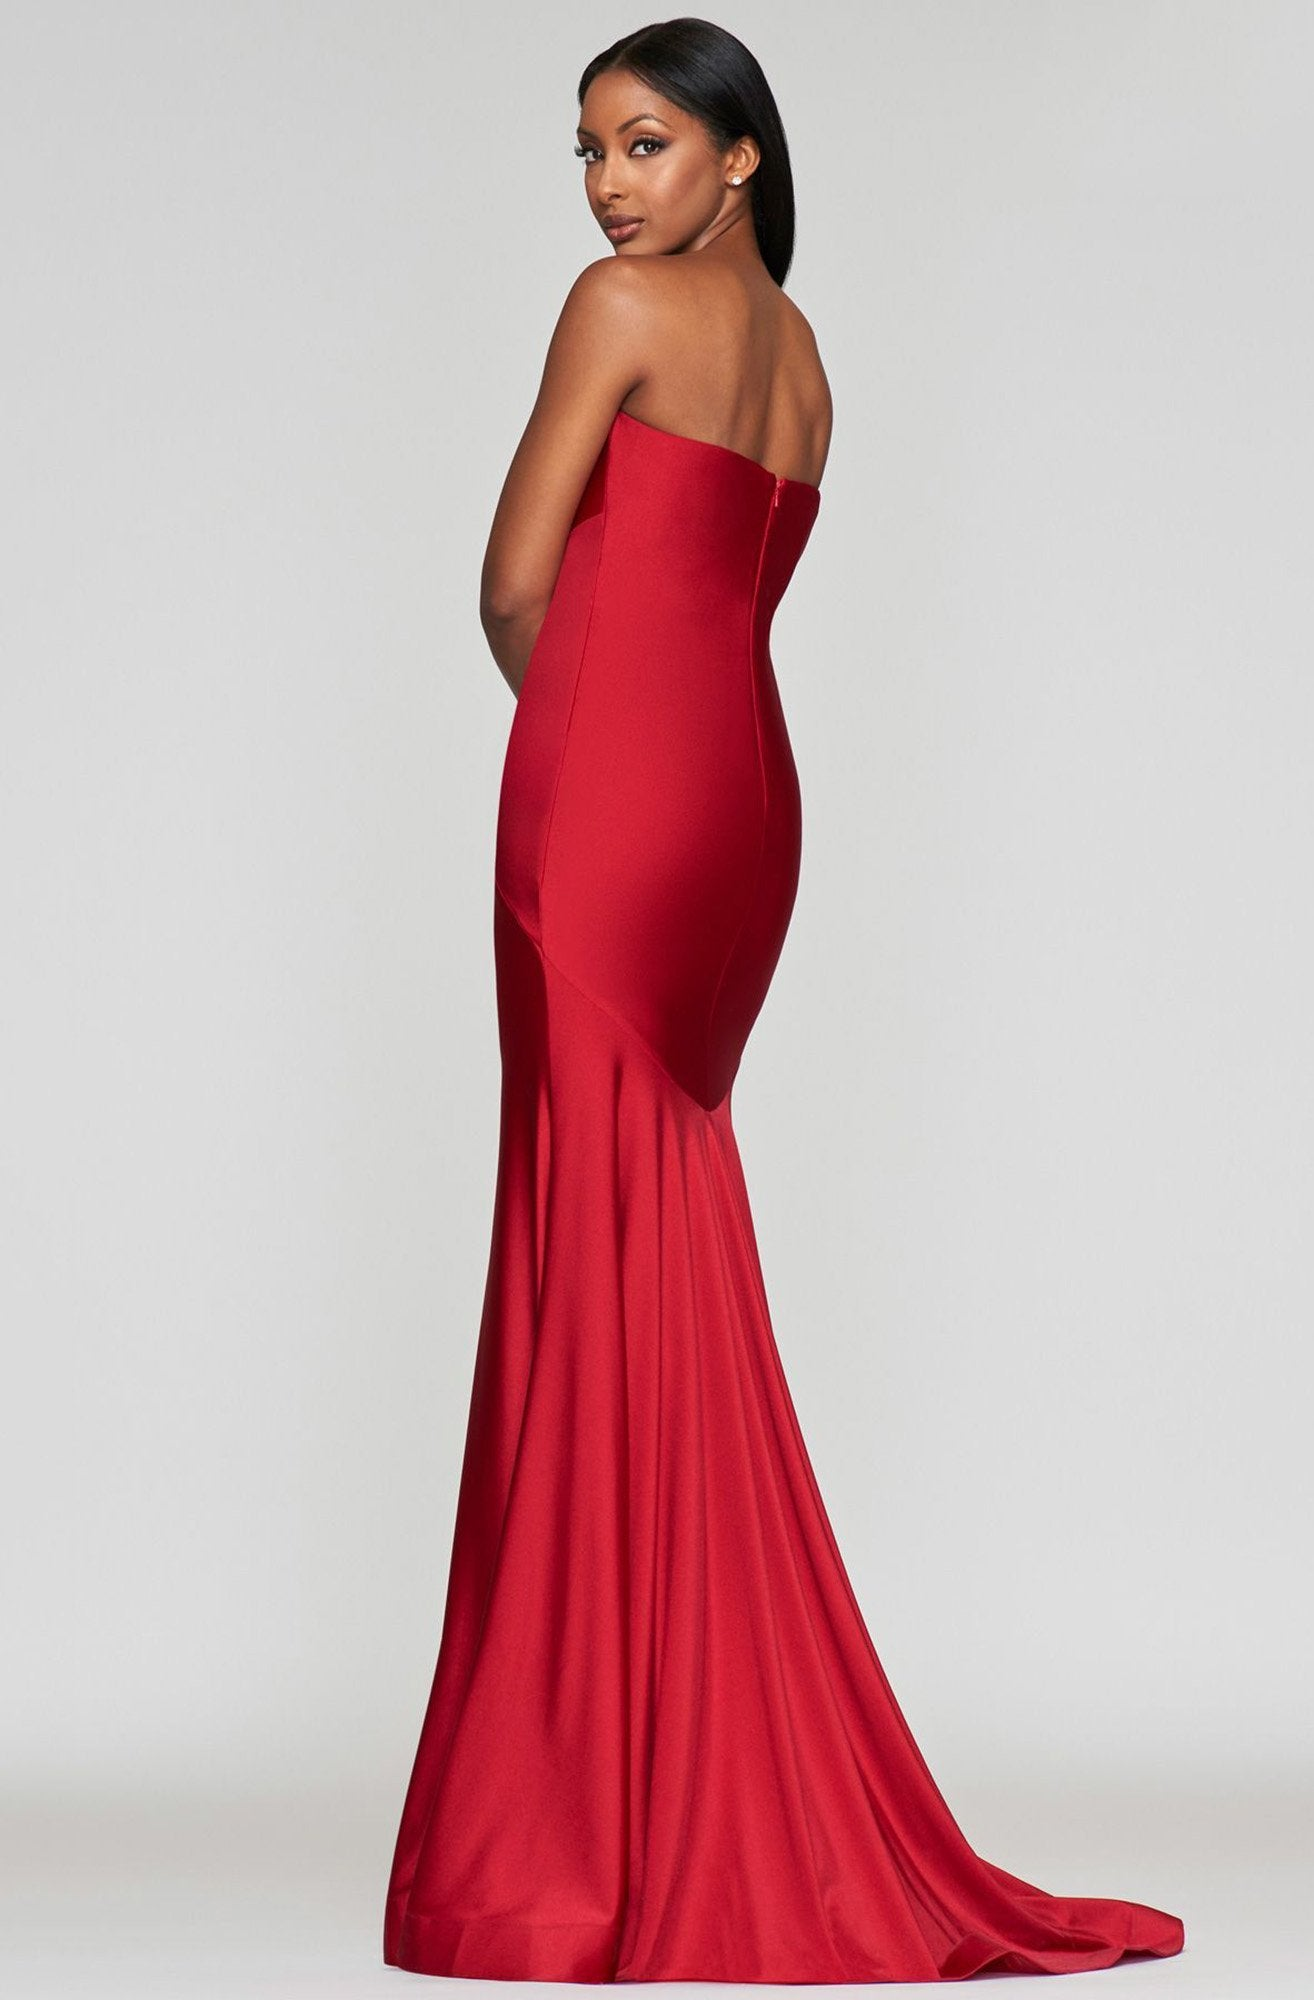 Faviana - Long Stretch Charmeuse Dress S10381 In Red